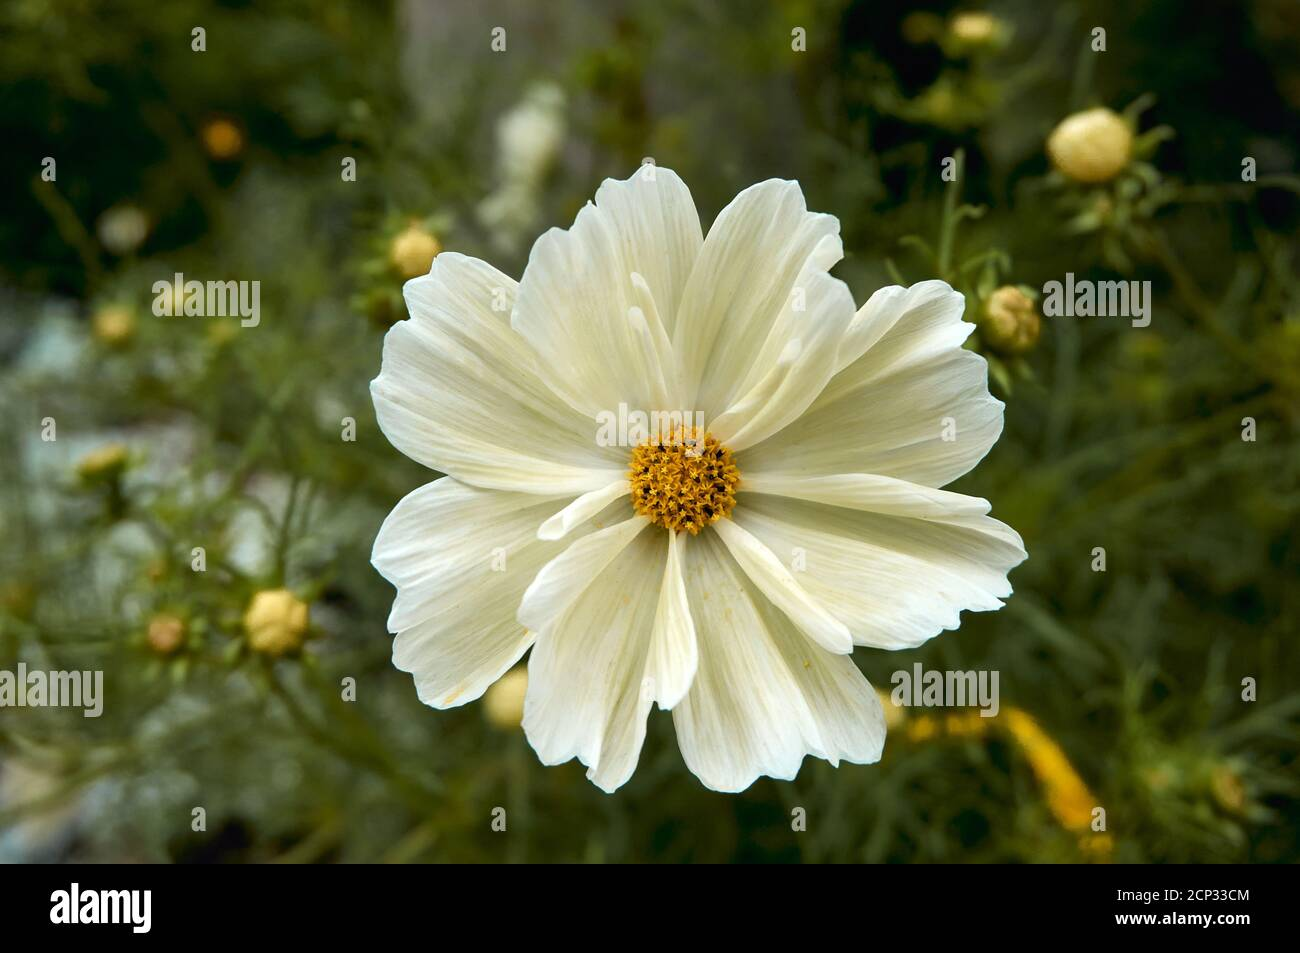 closeup-of-a-white-coreopsis-flower-bloo